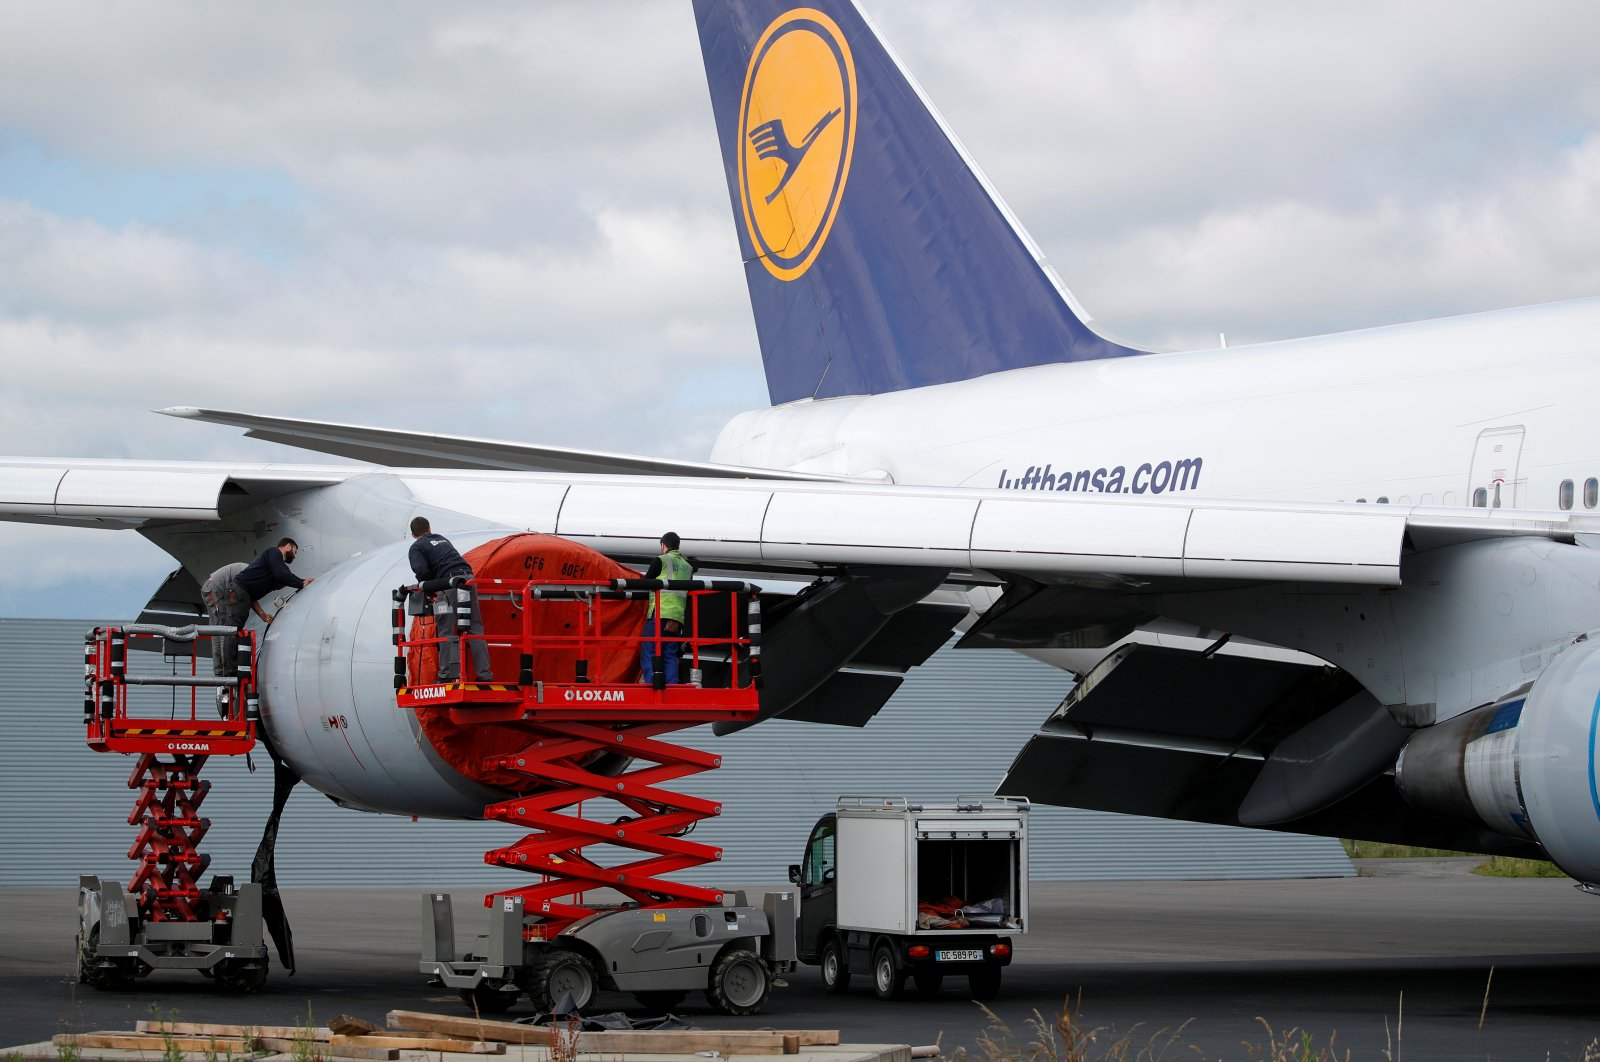 Employees work on a Lufthansa Boeing 747 at French aircraft storage and recycling company Tarmac Aerosave in Tarbes following the coronavirus disease (COVID-19) outbreak in France, June 19, 2020. (Reuters Photo)